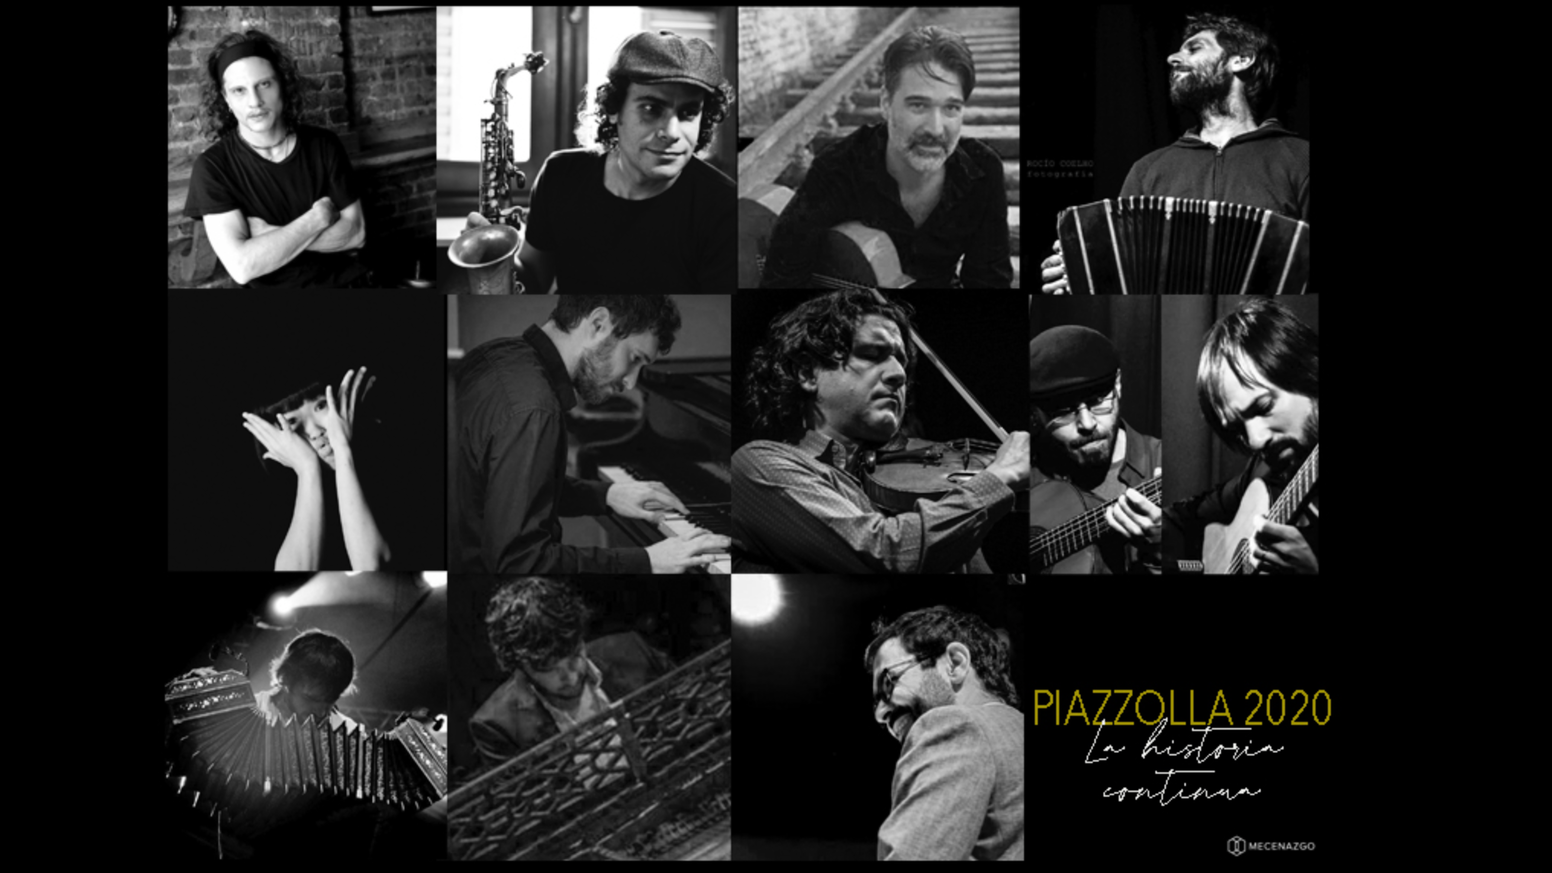 Piazzolla's History of Tango continues with 11 composers and one album.